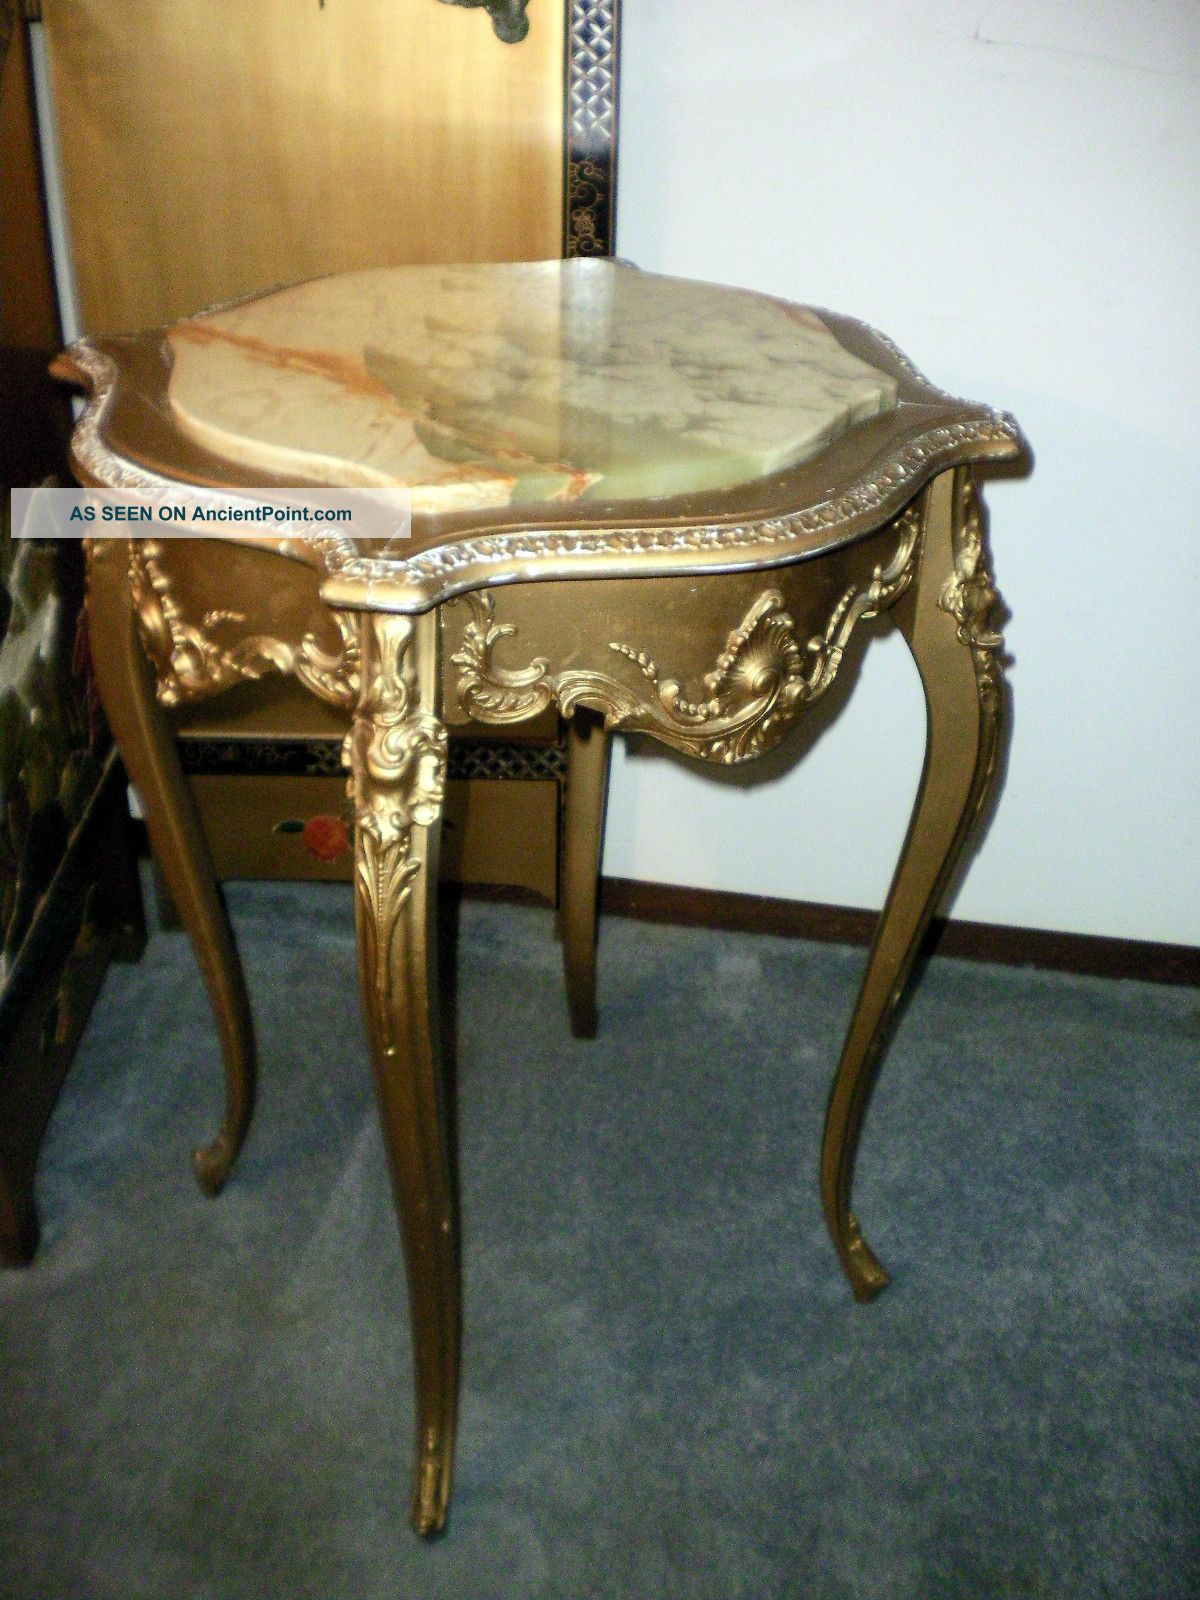 Antique French Louis Xv Gold Gilt Center Foyer End Table W/onyx Top 1900-1950 photo